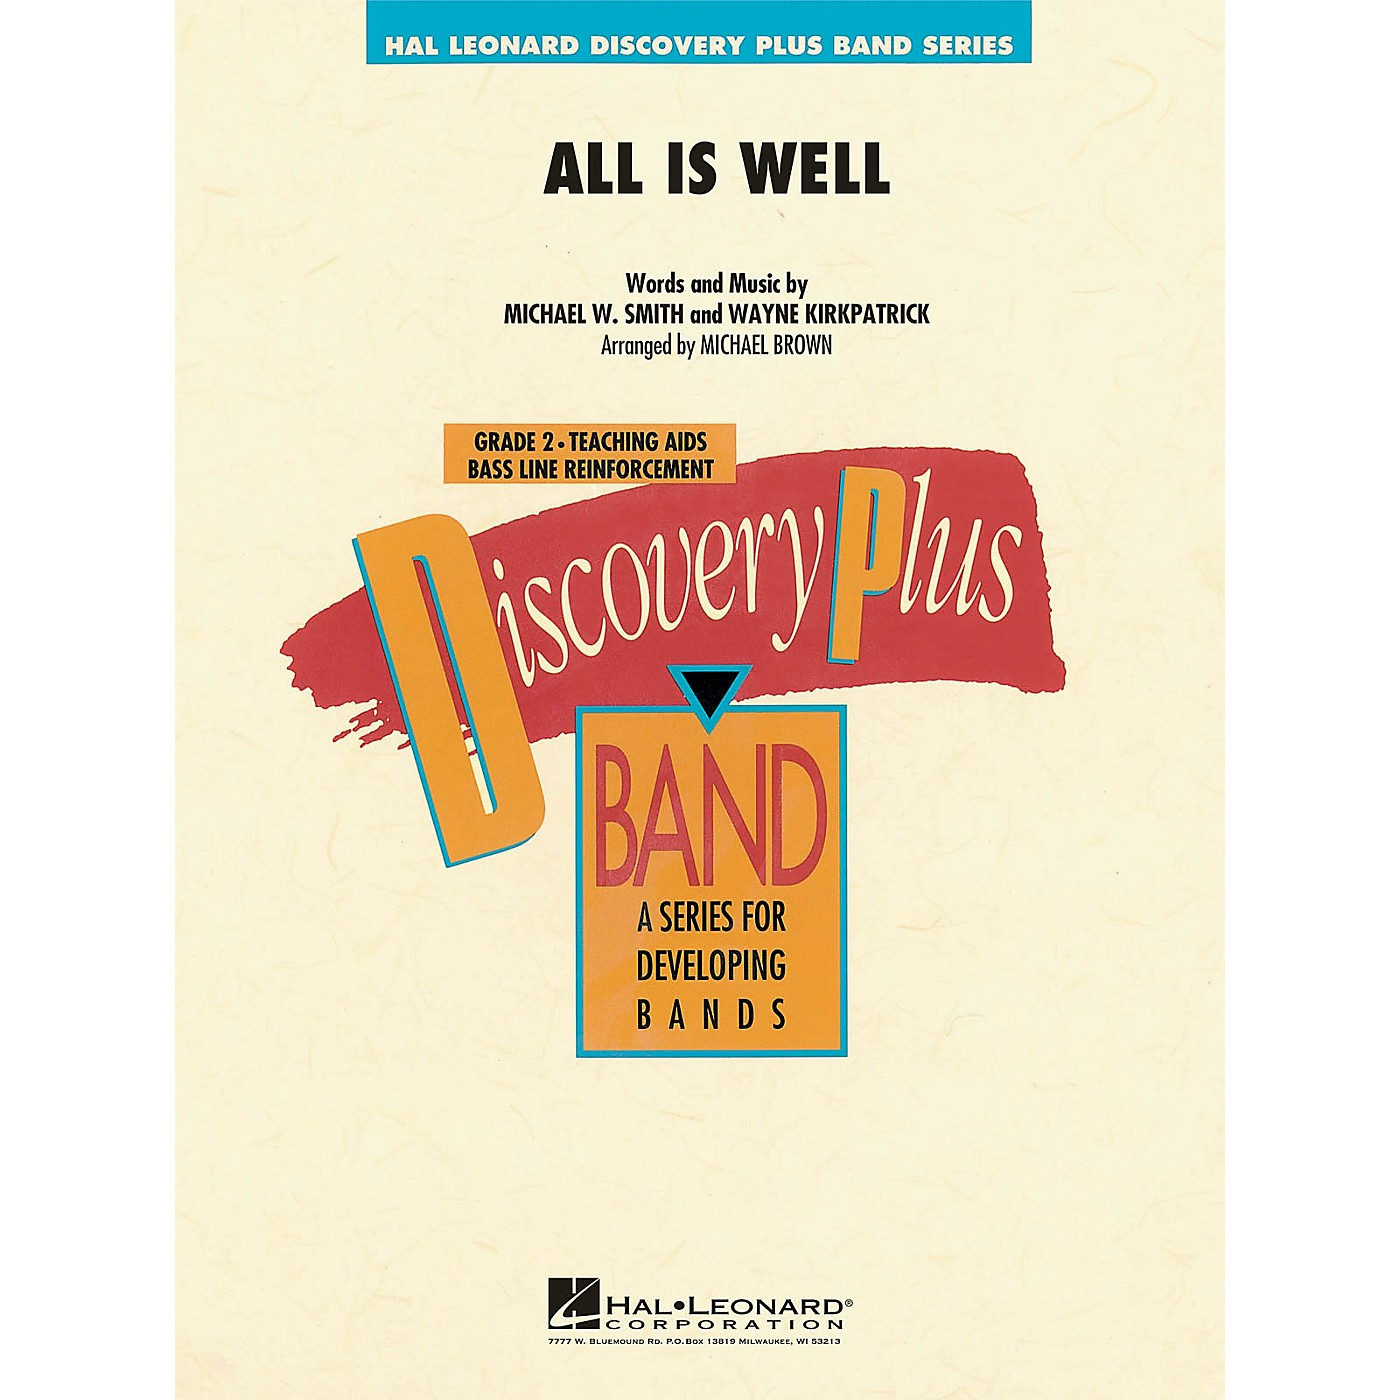 Hal Leonard All Is Well - Discovery Plus Concert Band Series Level 2 arranged by Michael Brown thumbnail